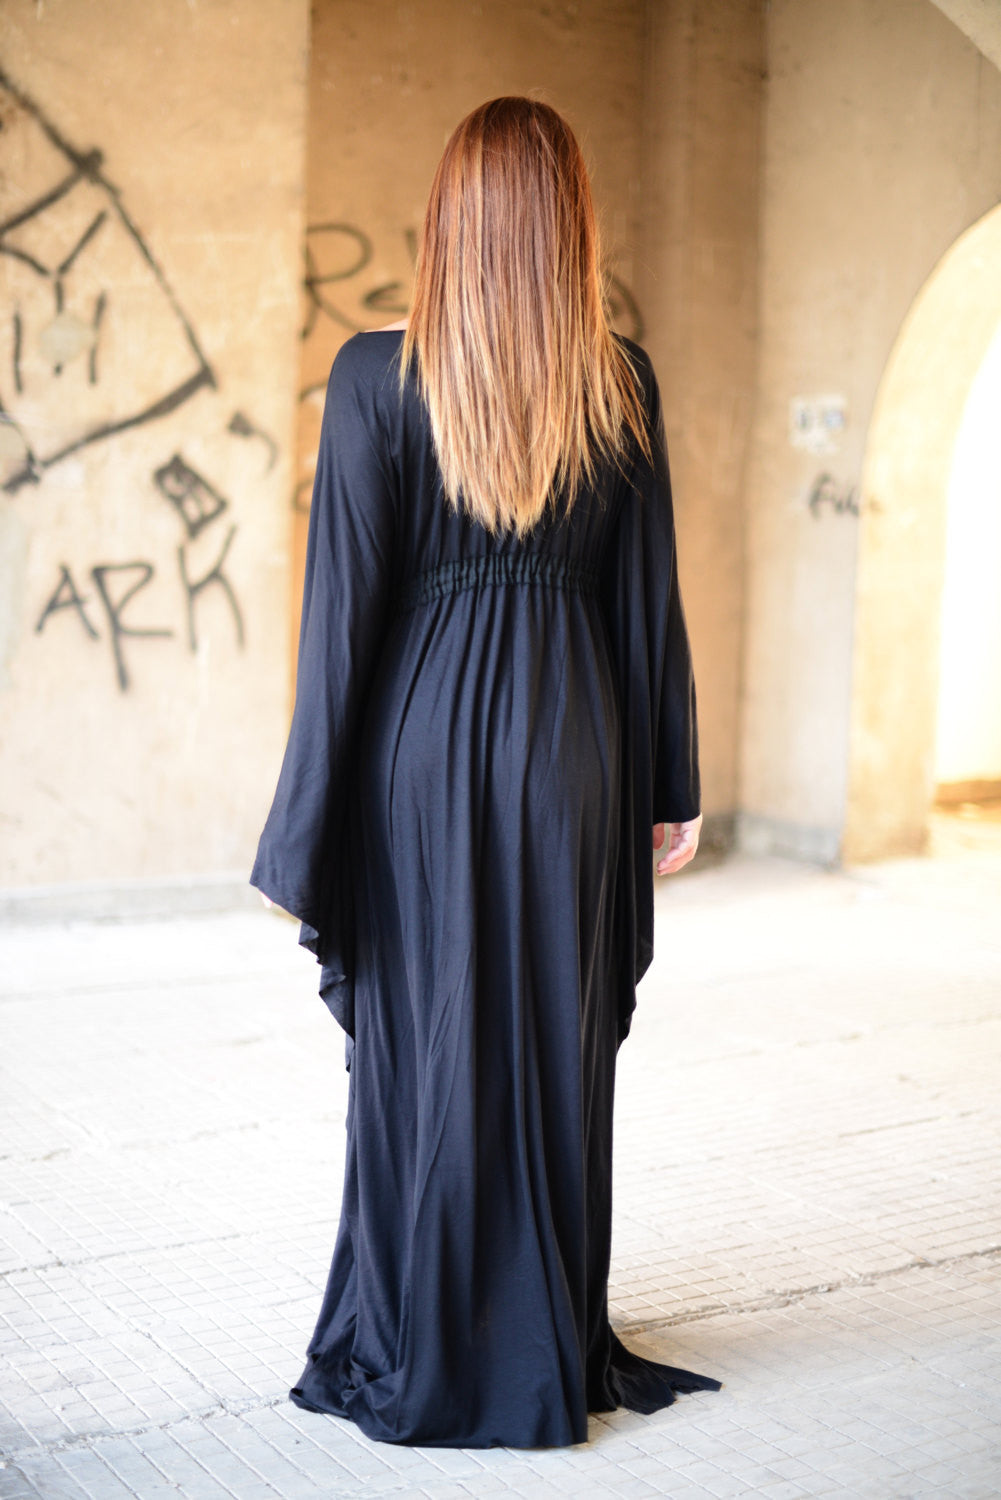 Black Maxi Dress, Long Caftan Dress, Kaftans Clothing